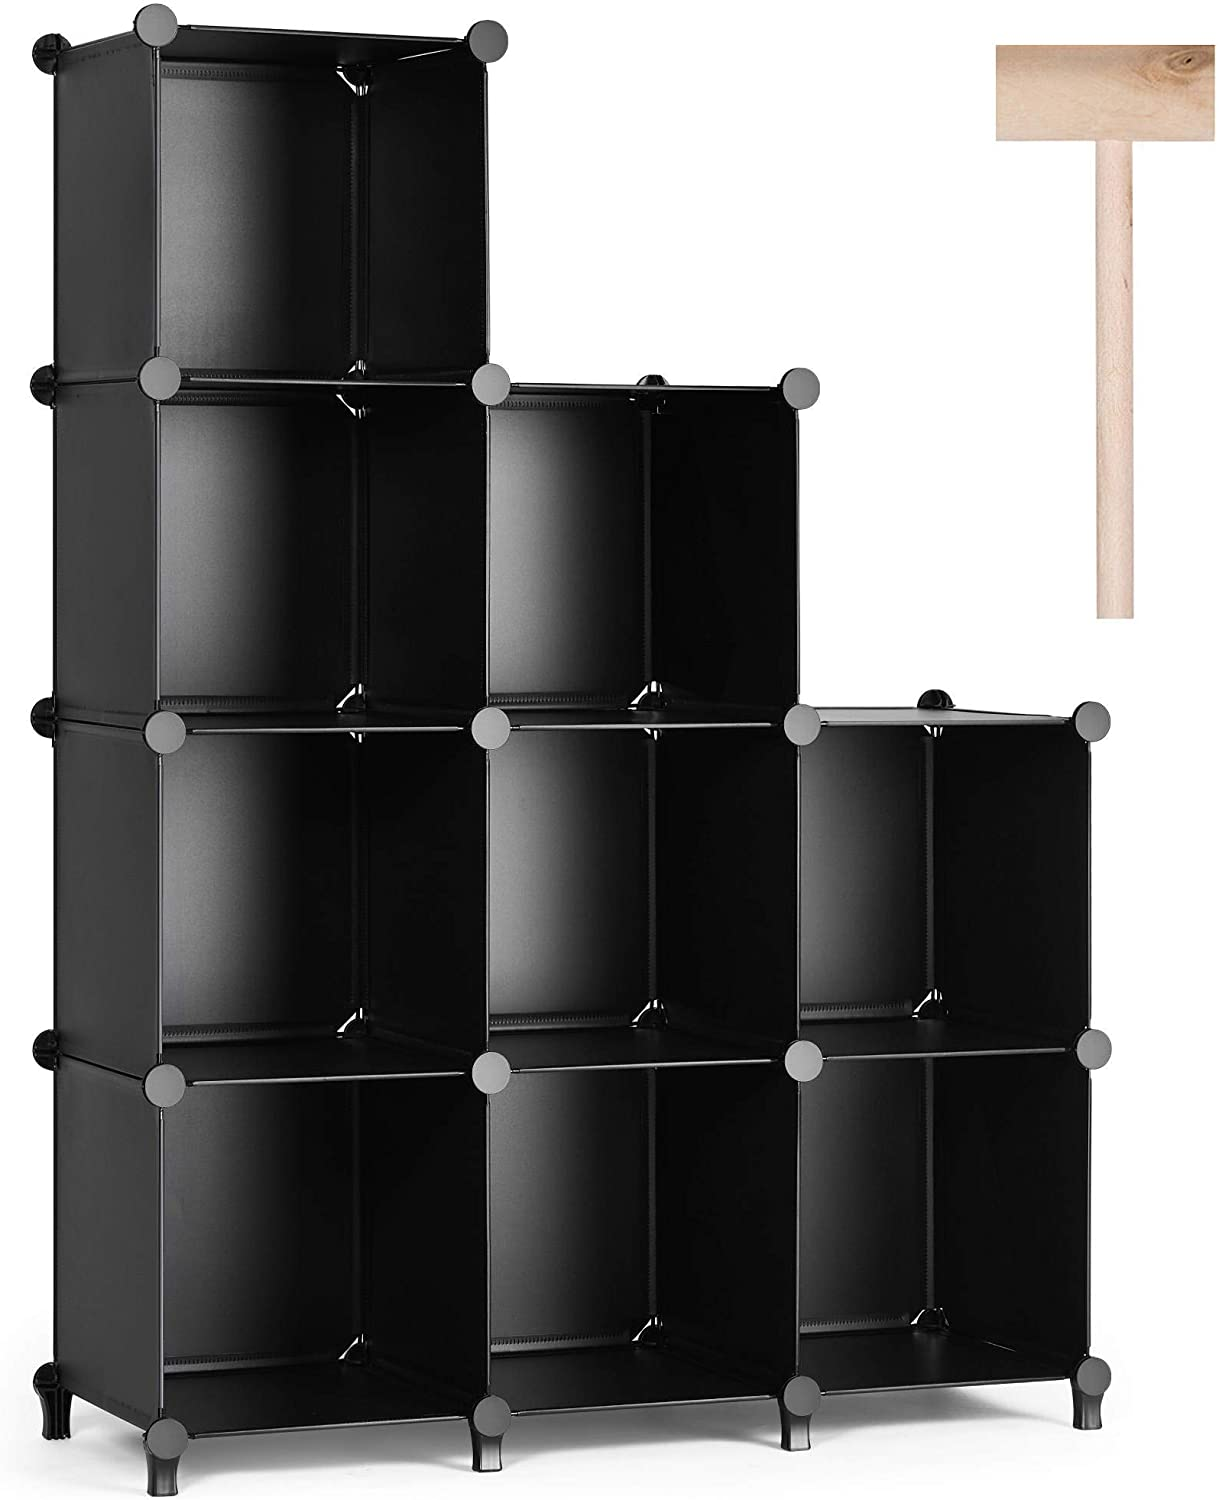 Puroma Cube Storage Organizer 9-Cube Closet Storage Shelves with Rubber Hammer DIY Closet Cabinet Bookshelf Plastic Square Organizer Shelving for Home, Office, Bedroom - Black